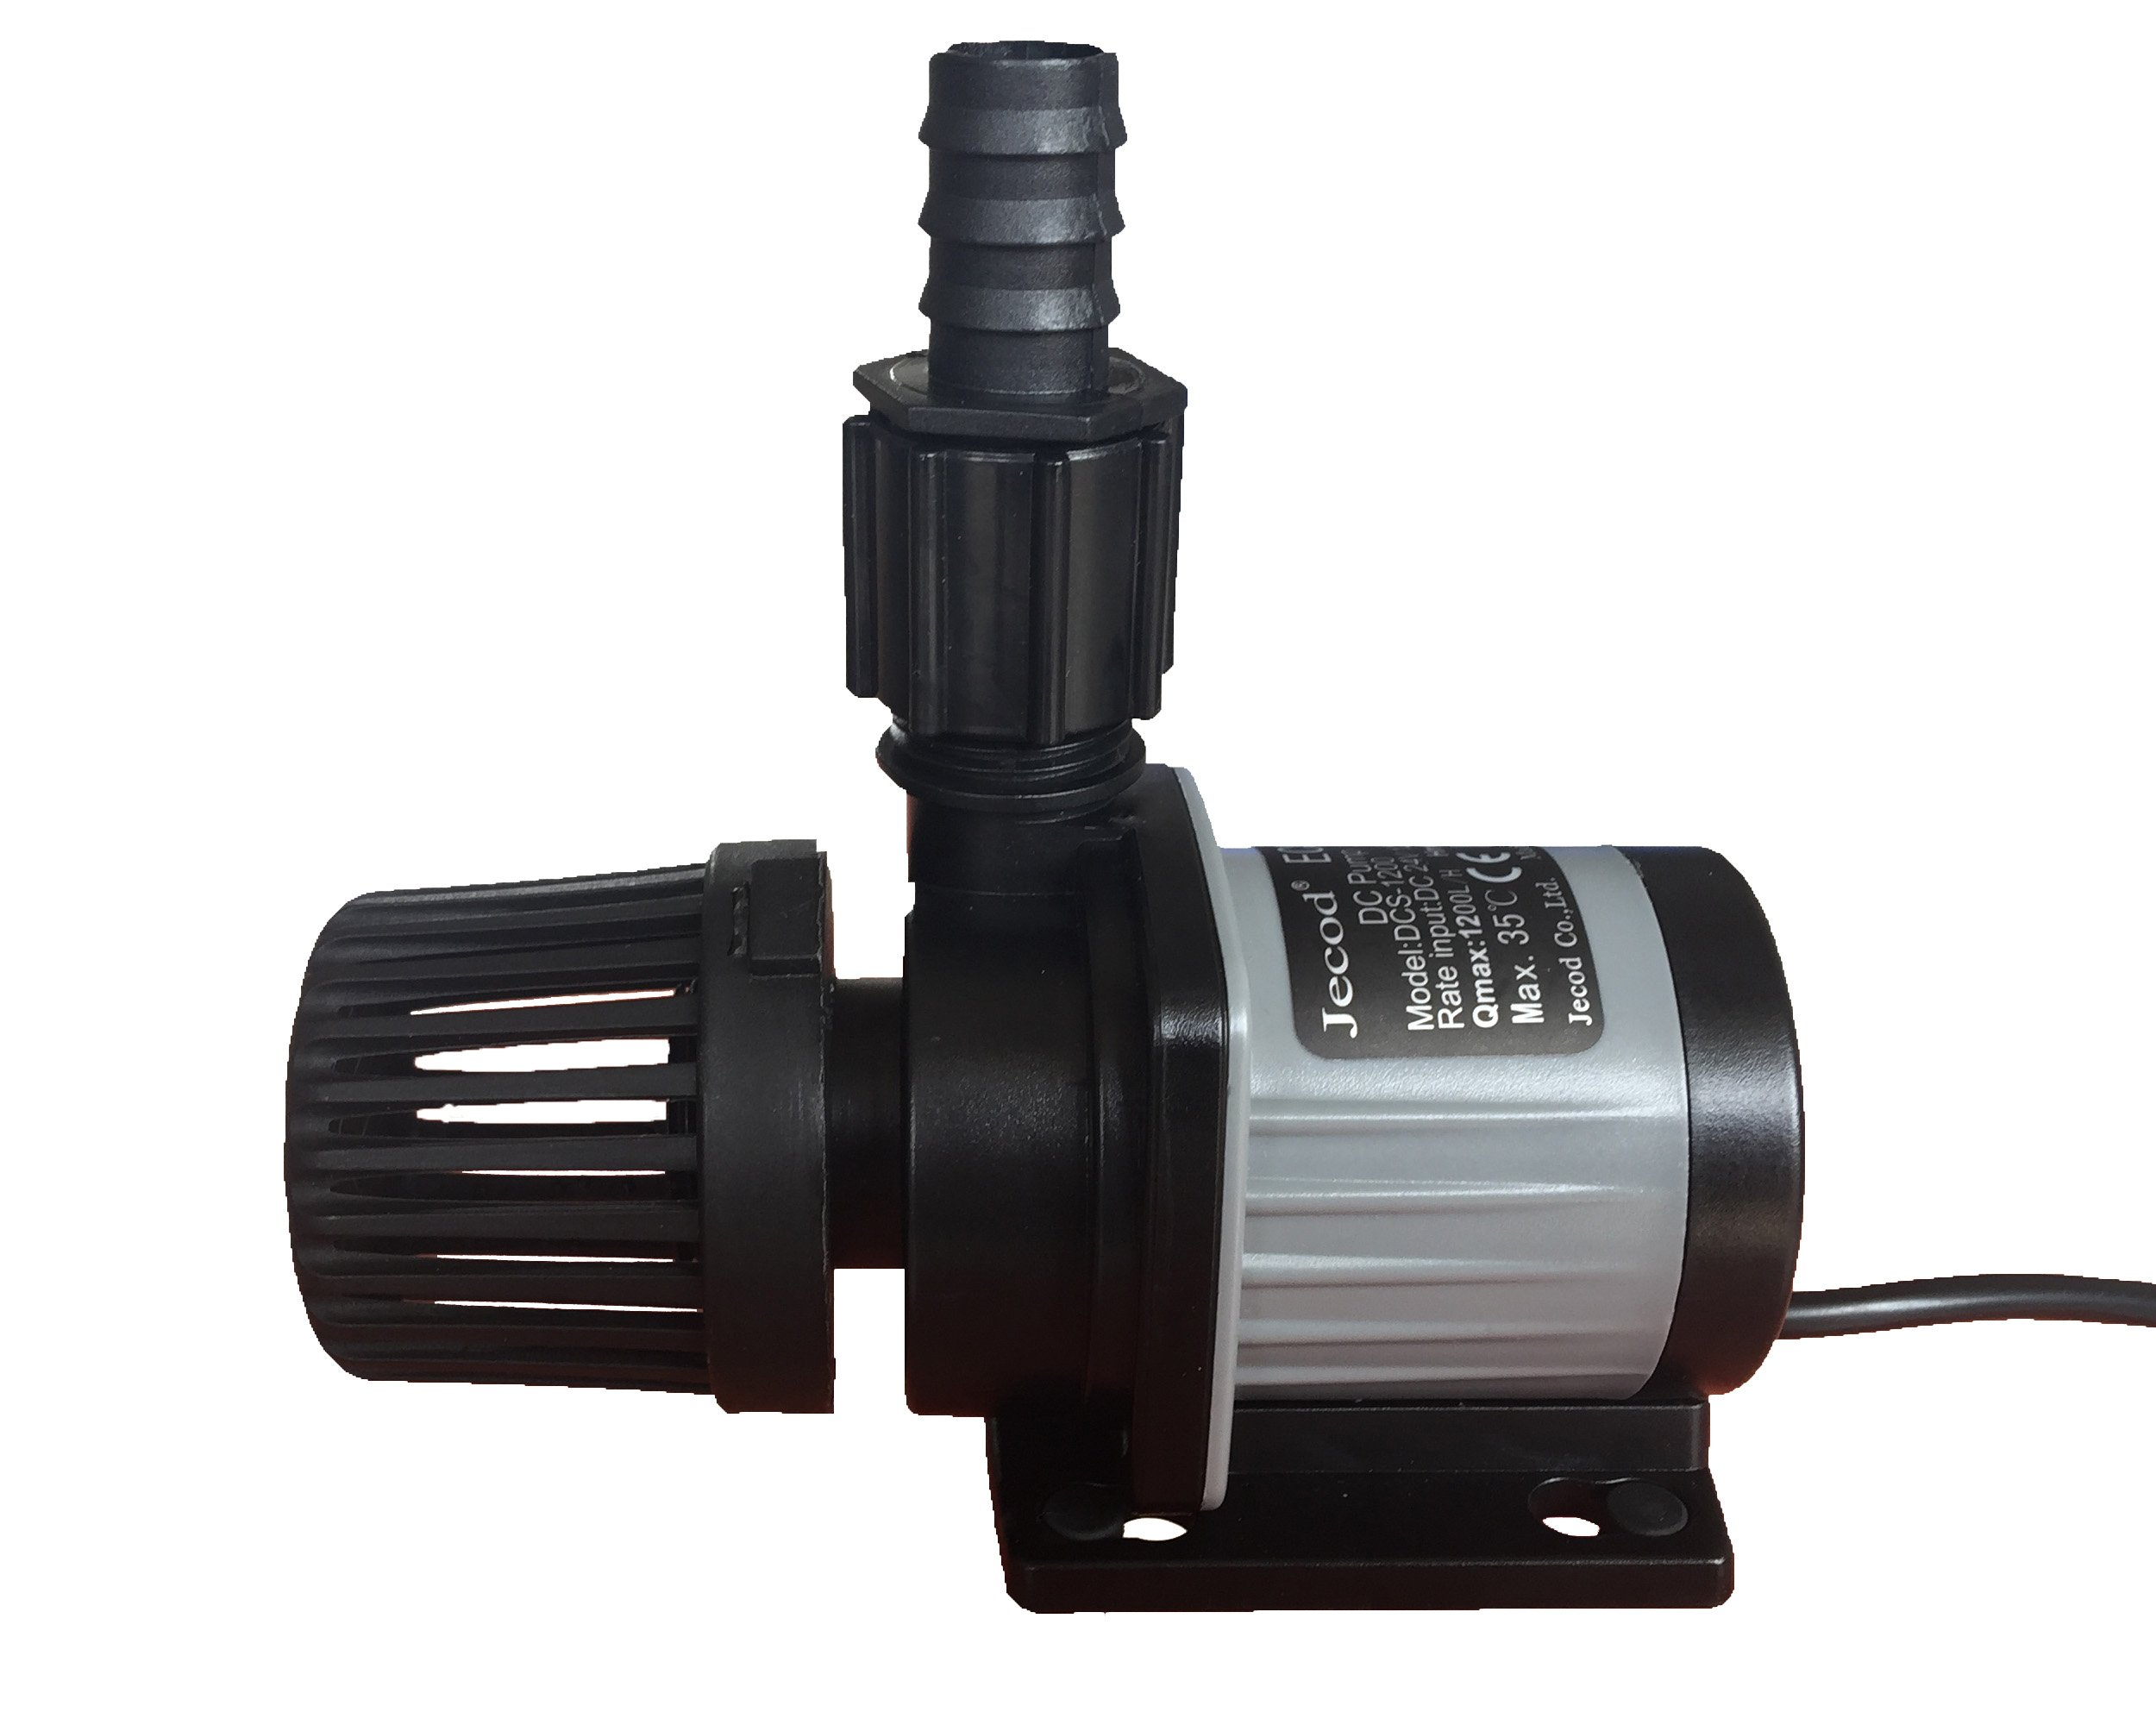 Jebao/Jecod DCS-1200 DC Water Pump 320GPH 4.9ft for Marine Reef Tanks Sump Skimmer Protein by Jebao/Jecod